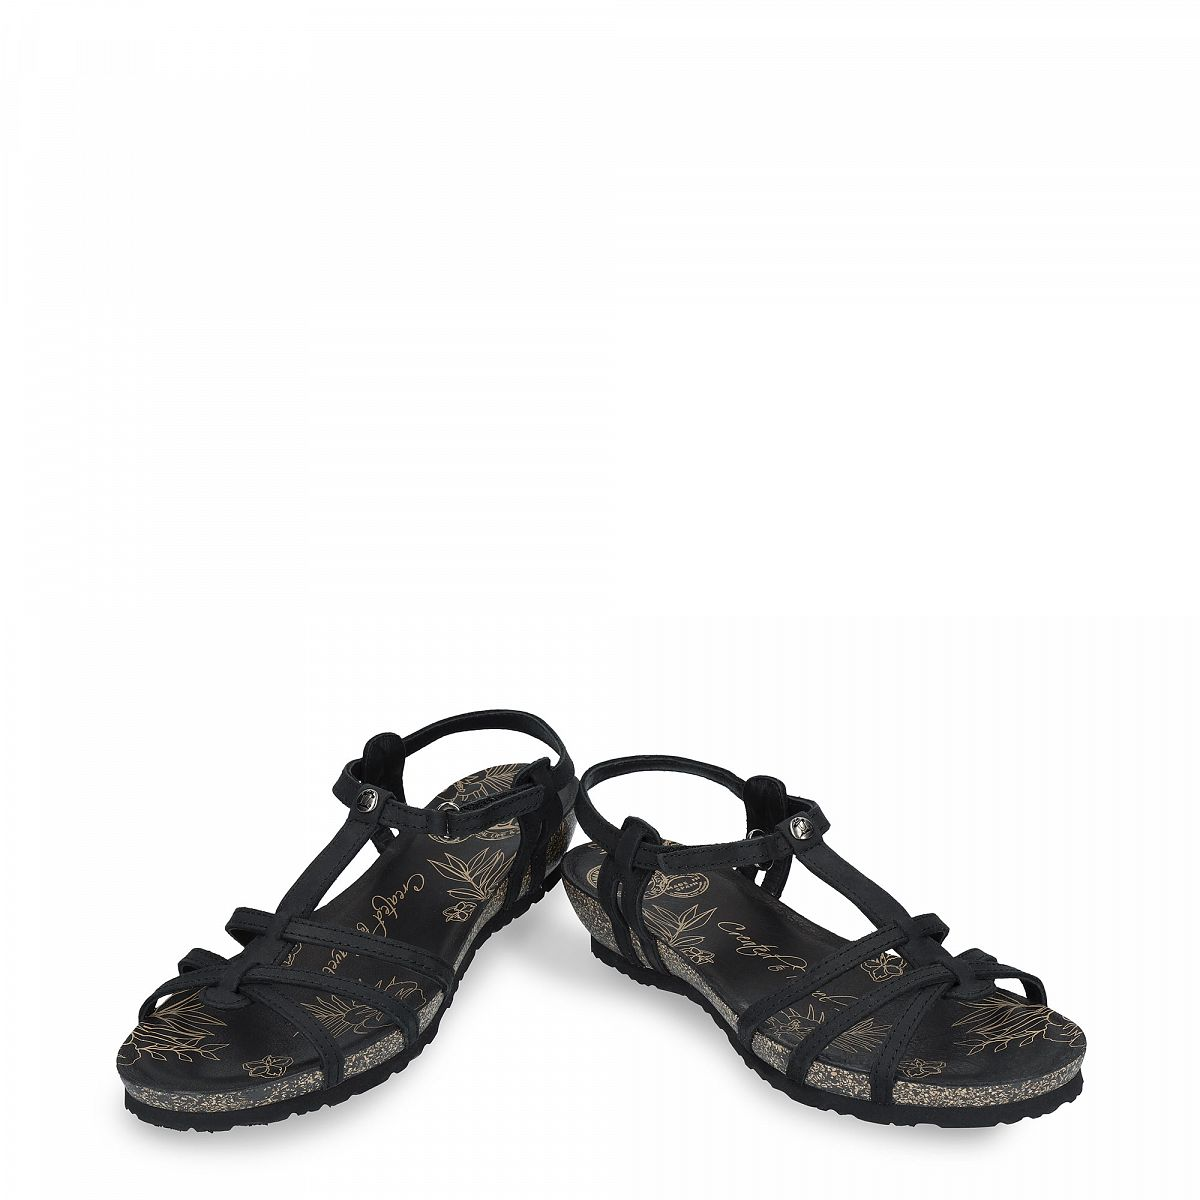 5c48c62c45f Women's sandals DORI BASICS black | PANAMA JACK®